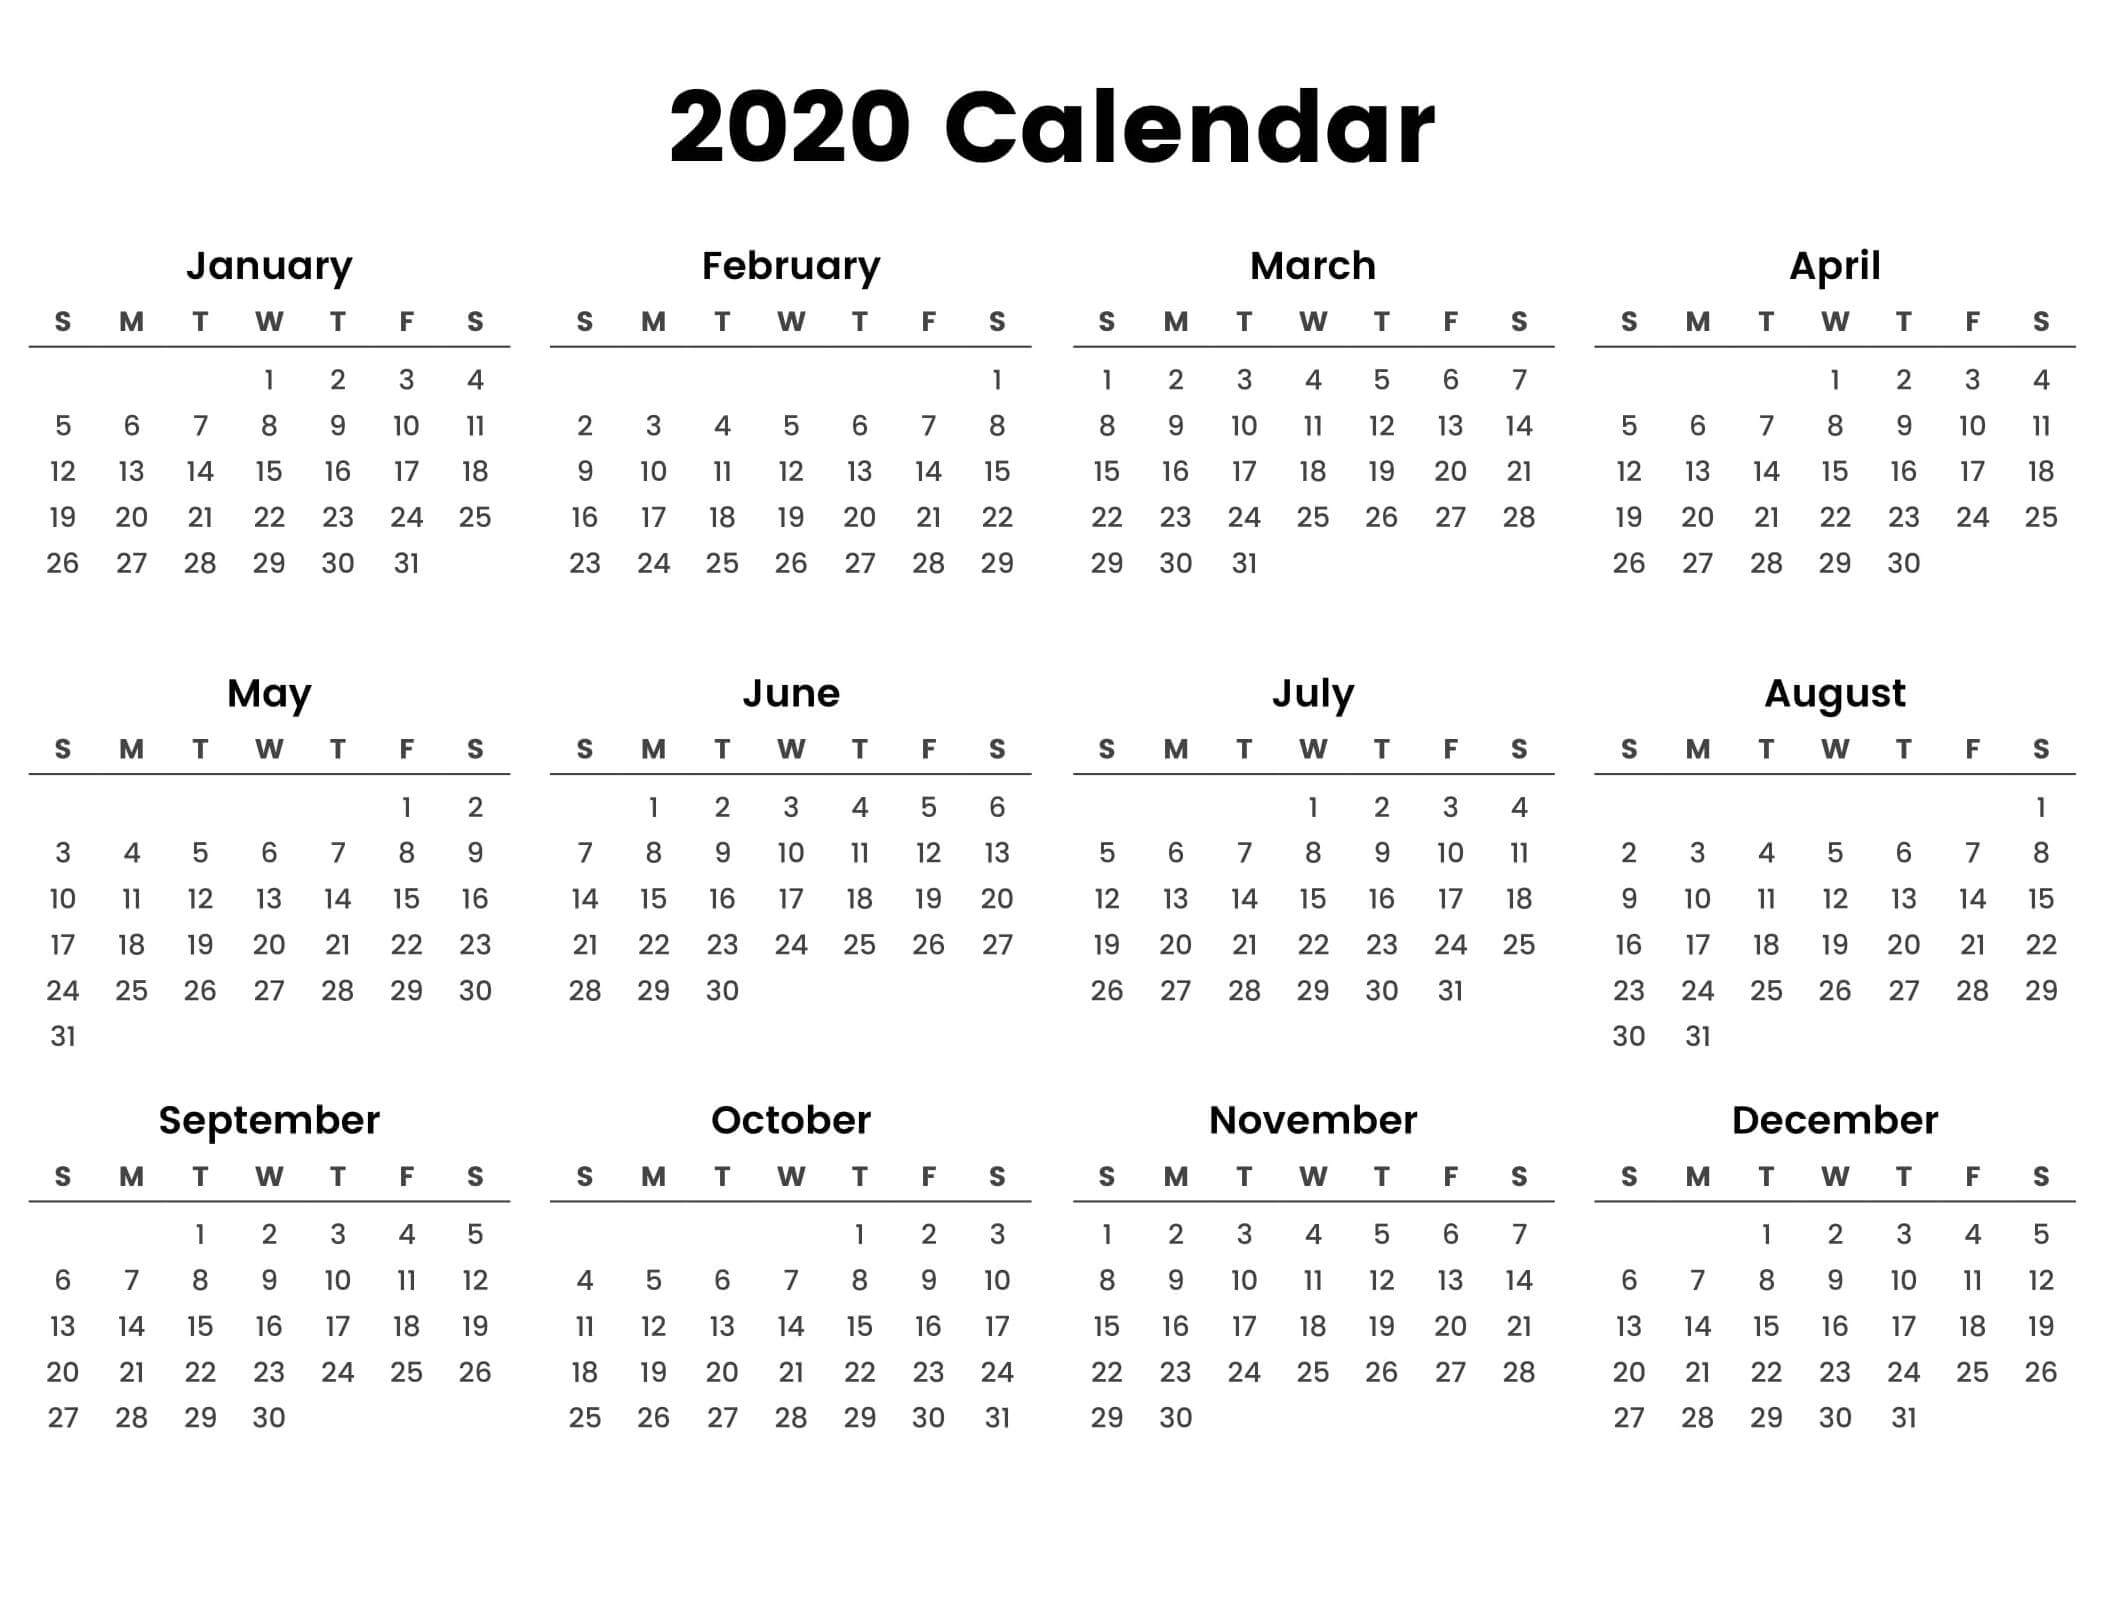 Large Yearly Calendar 2020 With Notes Pdf - Set Your Plan for Year Ata Glance 2020 Calendar